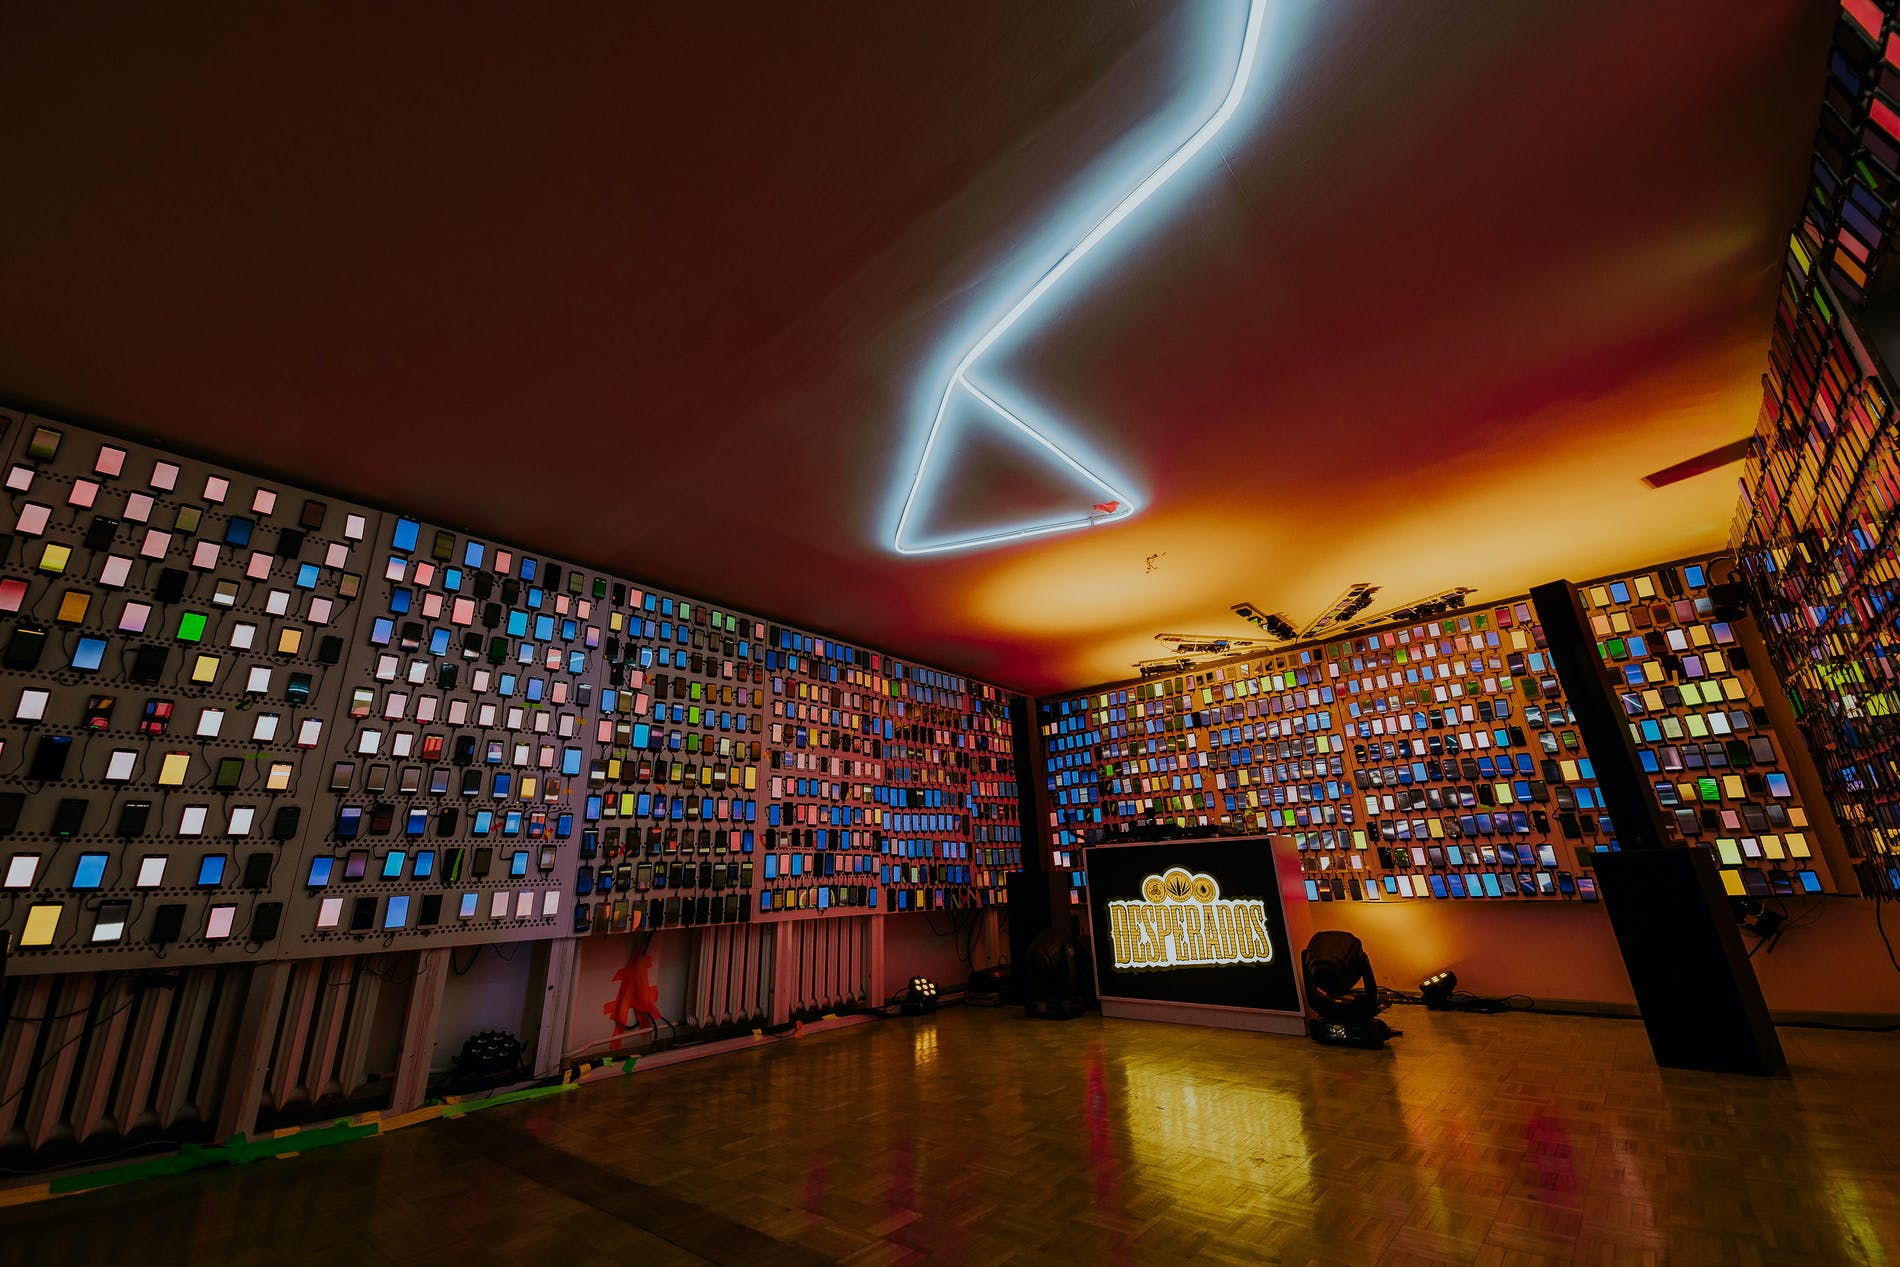 1559056952669546 linked together 1 800 phone screens created the largest ever video light show at a house party